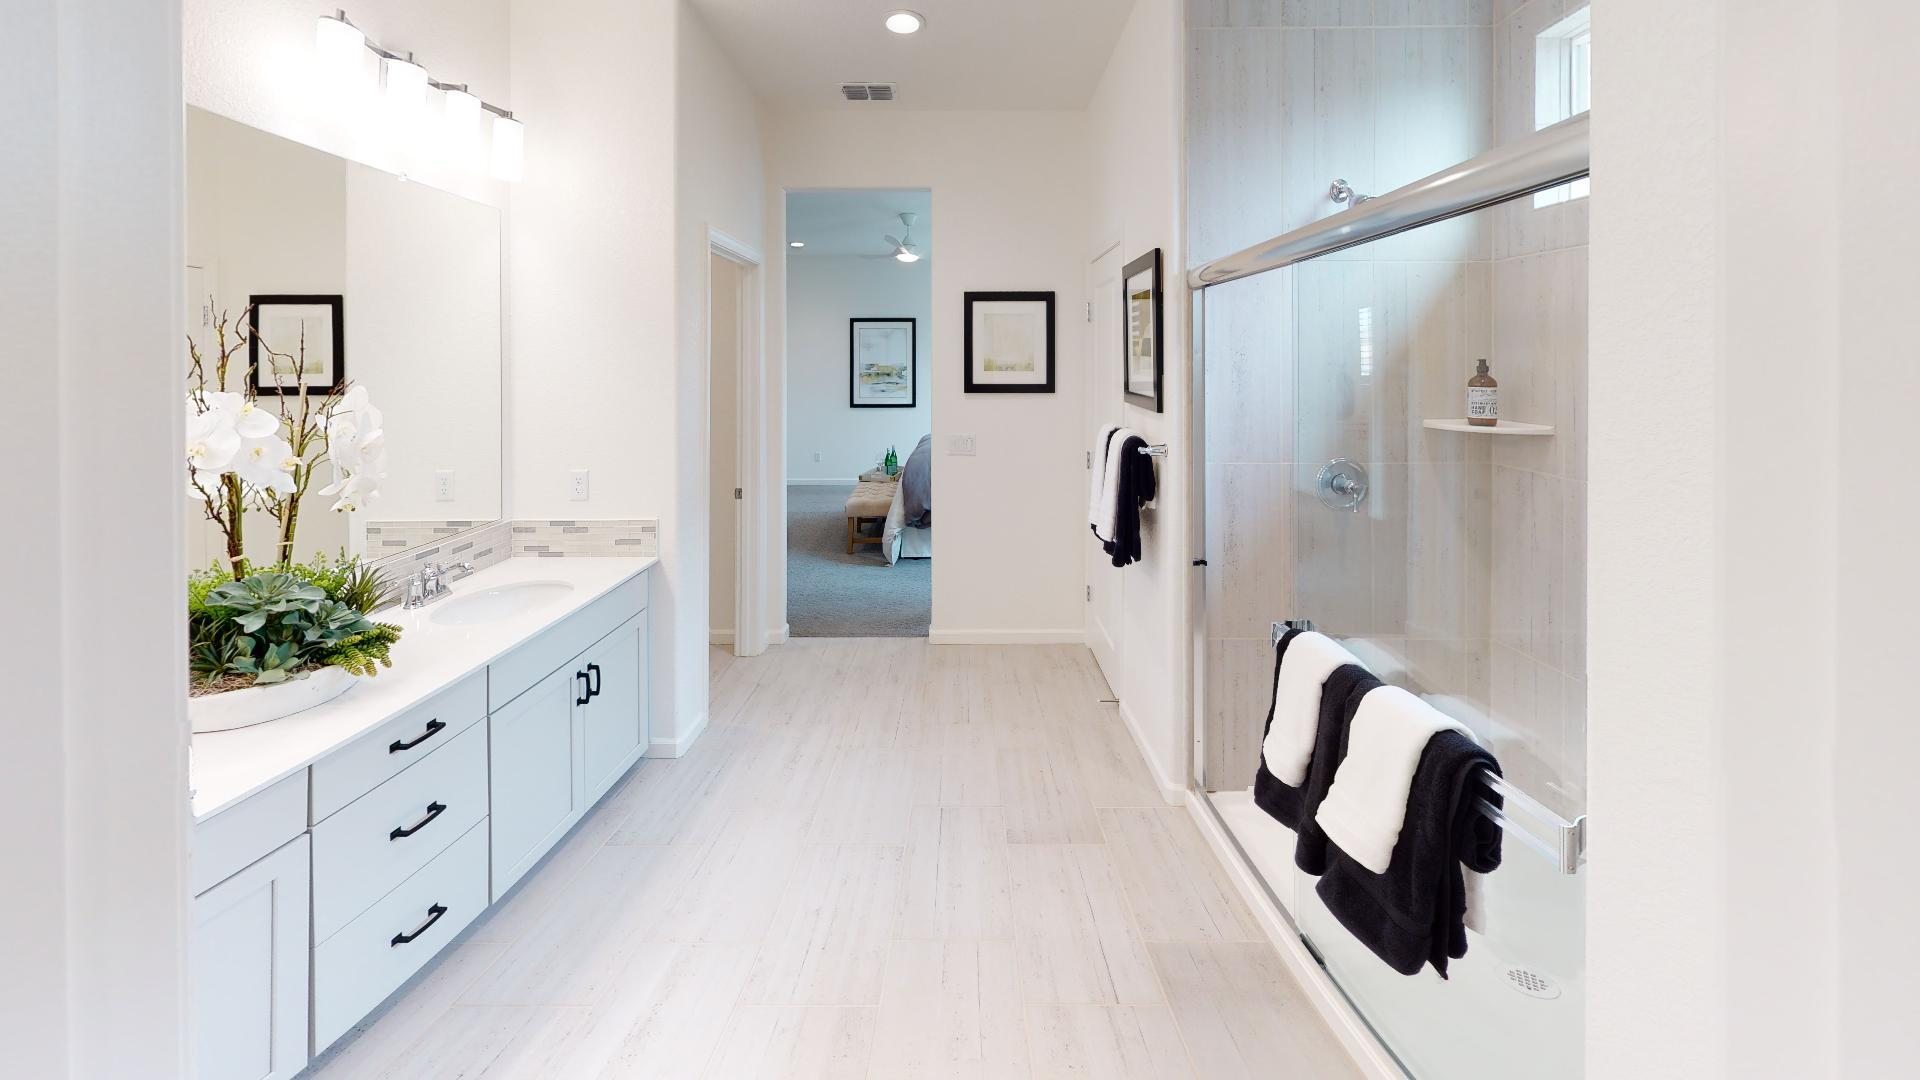 Bathroom featured in the Residence Three By Bright Homes in Merced, CA